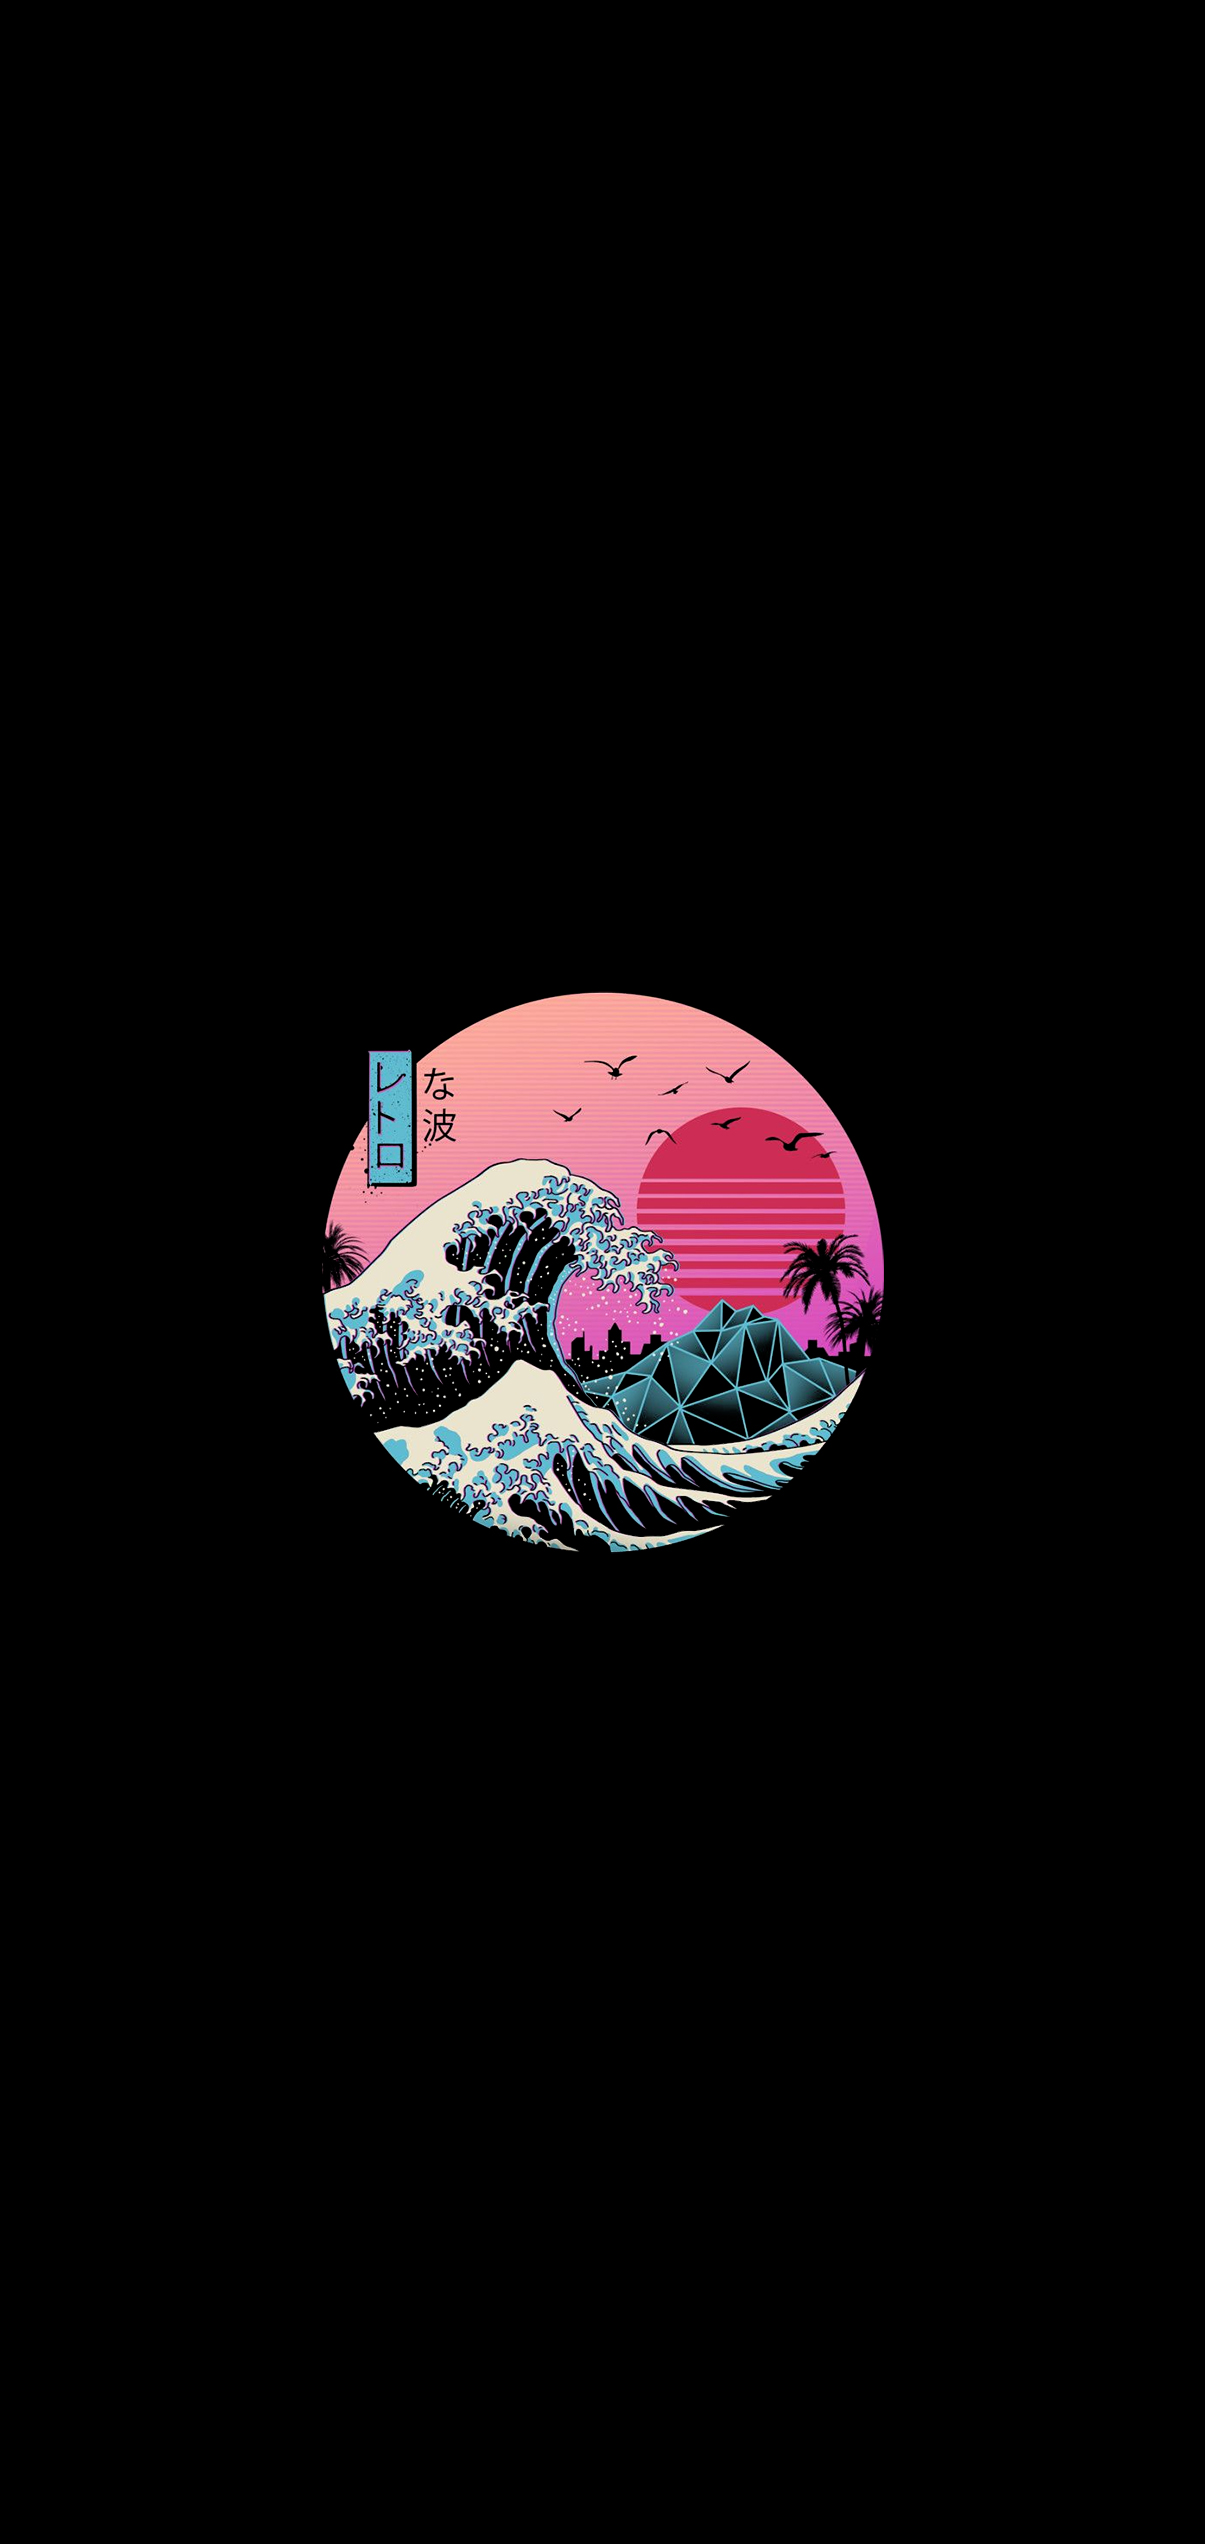 amoled wallpaper The Great Wave off Kanagawa